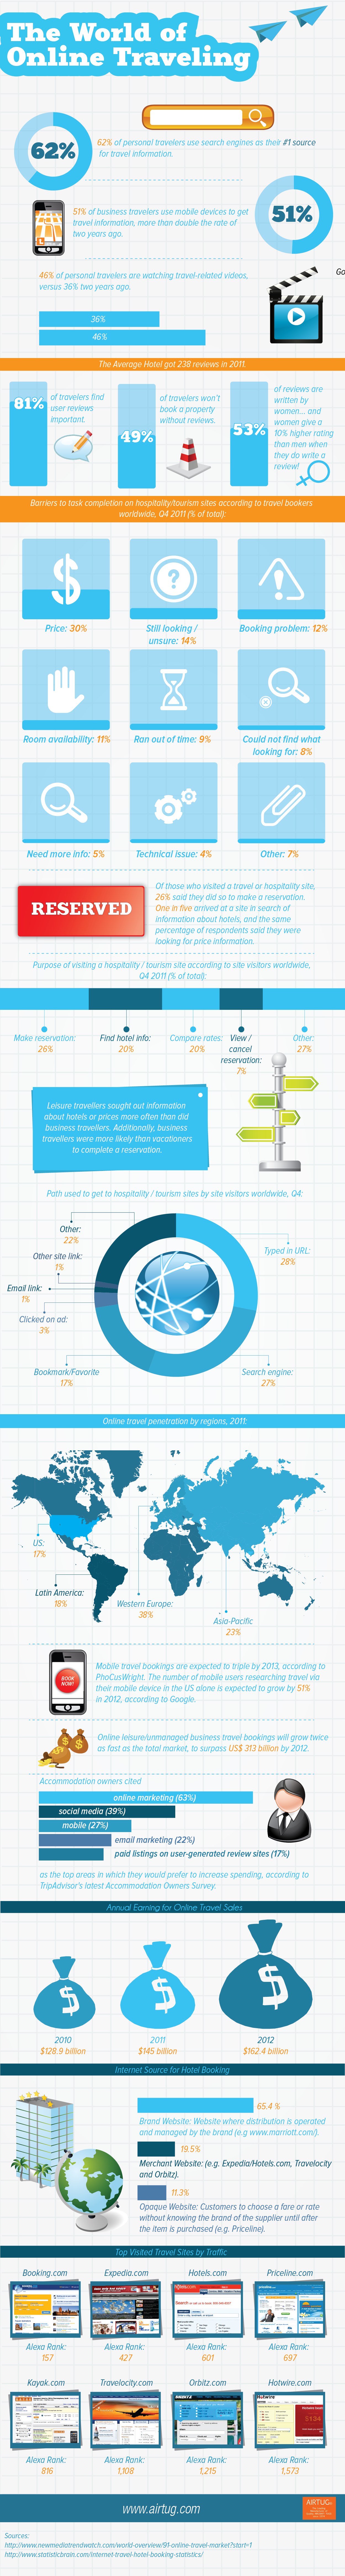 The World of Online Traveling - Infographic | AIRTUG